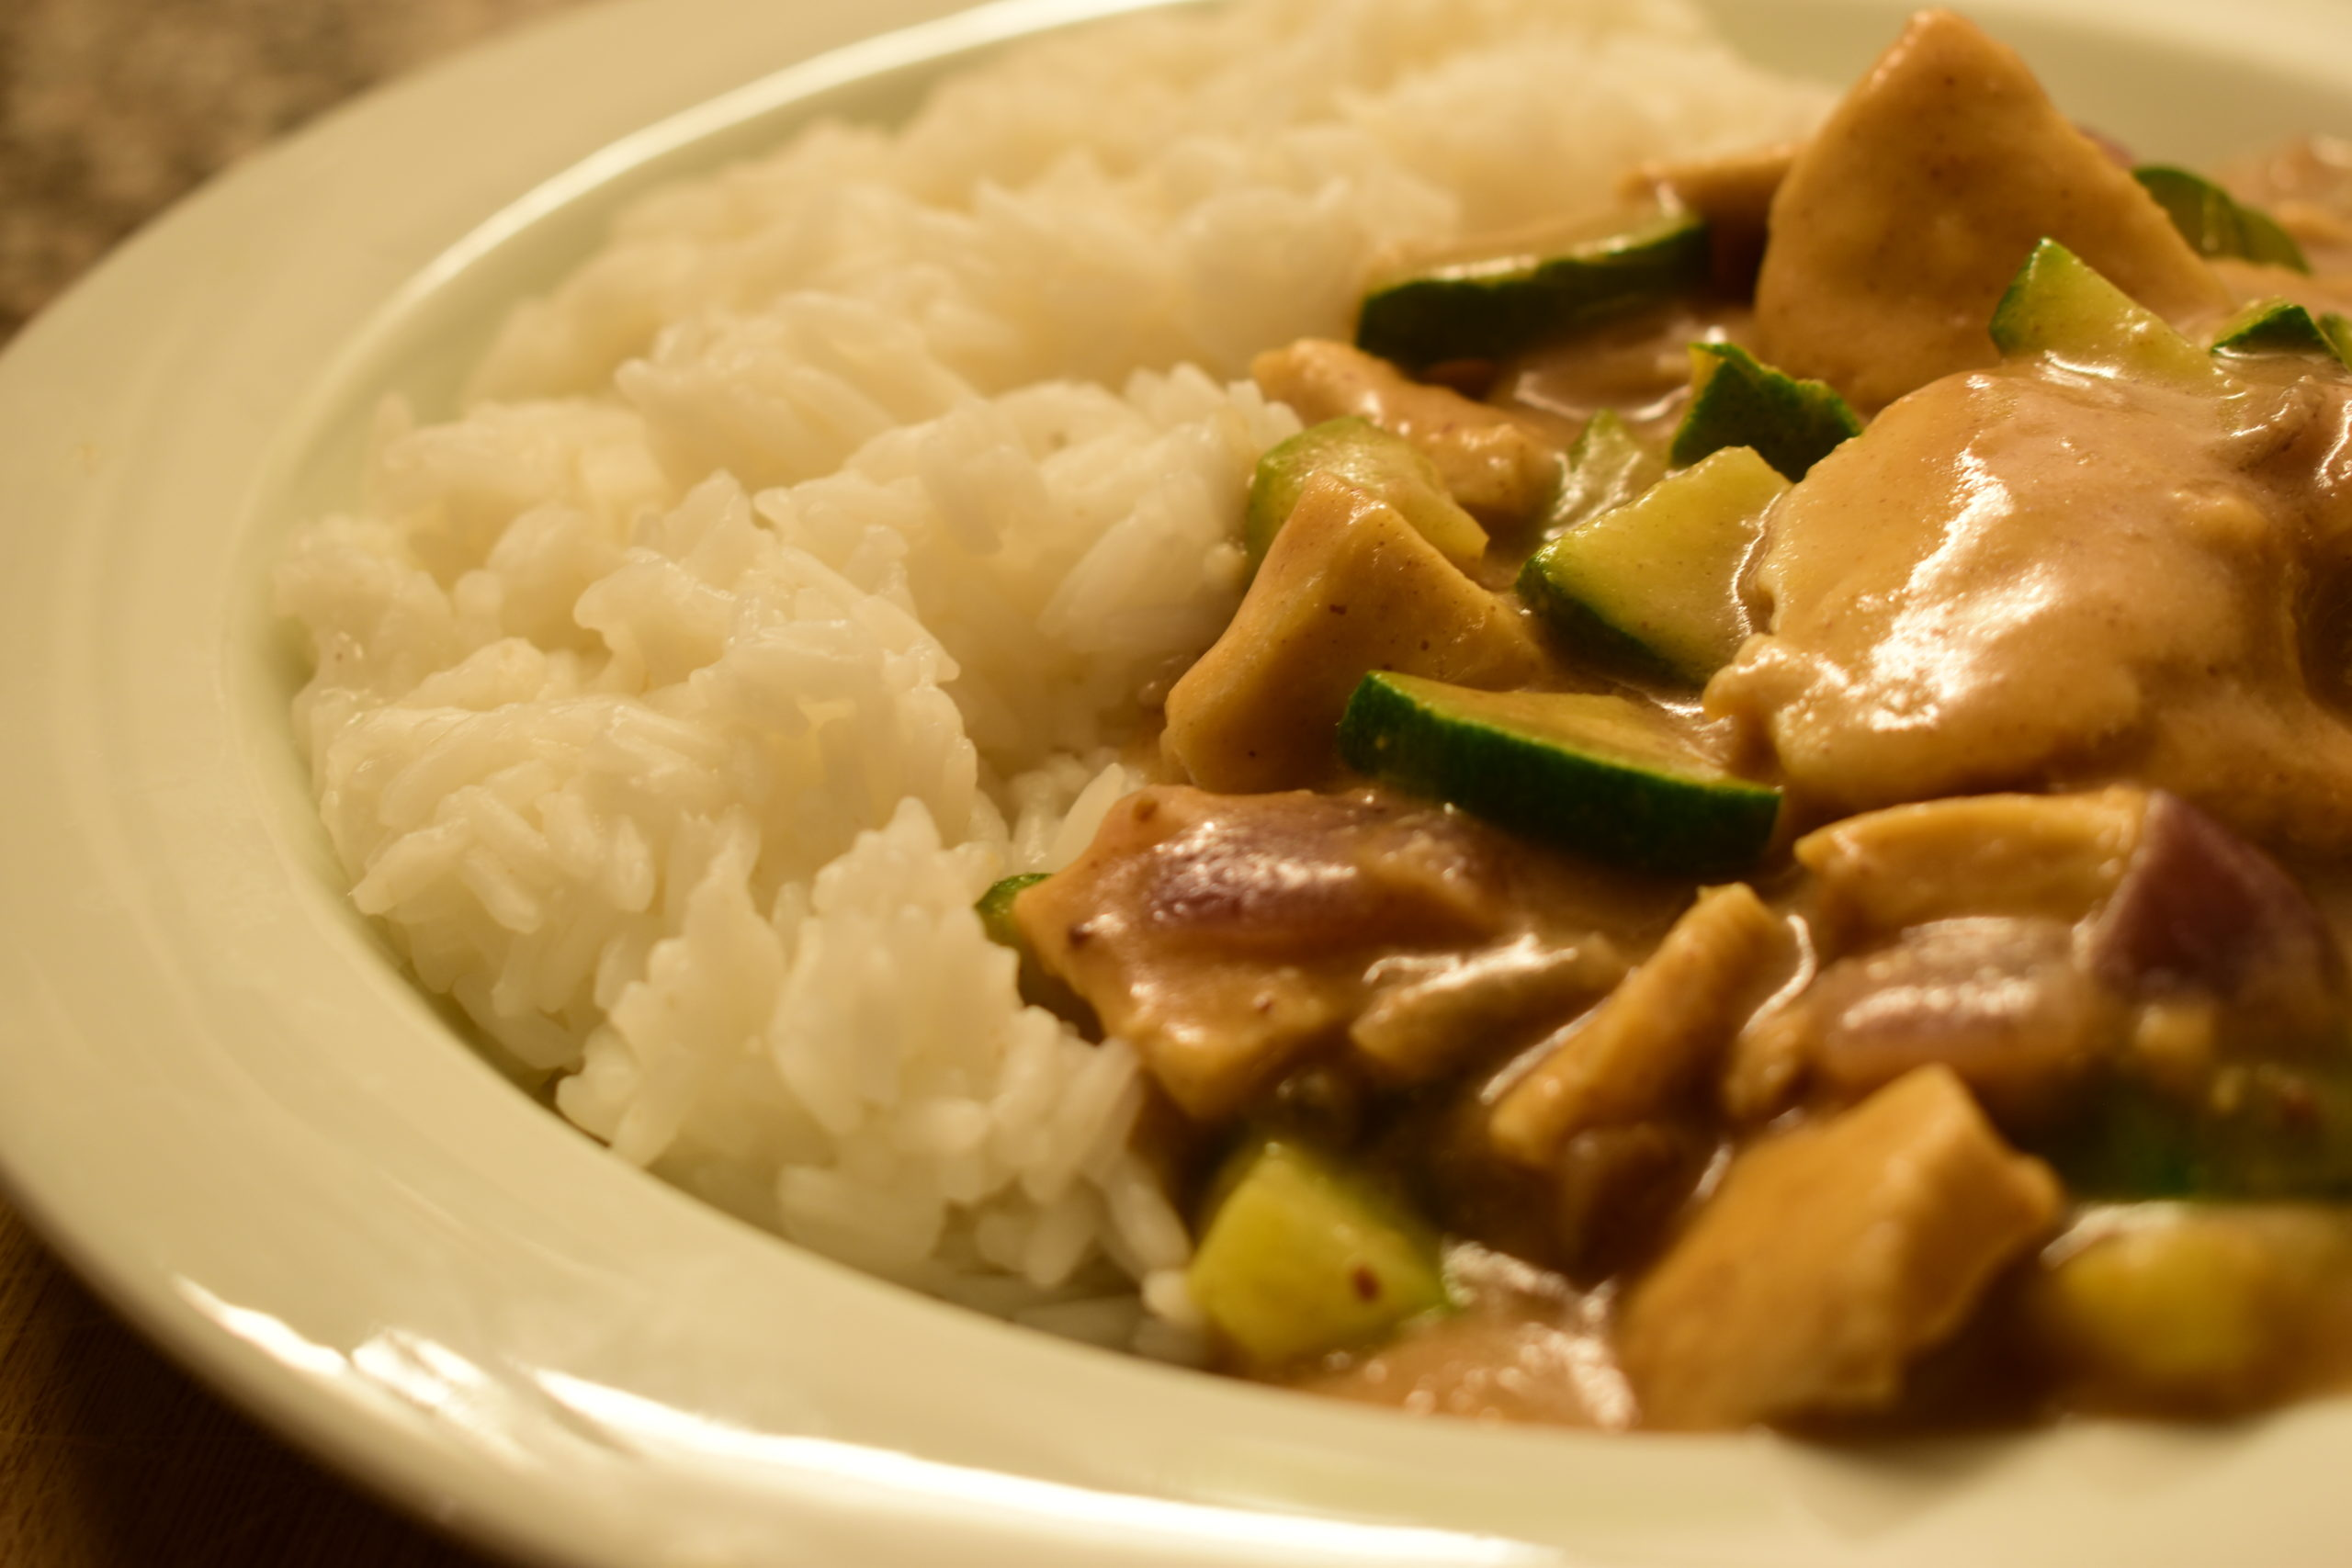 Peanut butter chicken and zucchini with basmati or jasmine rice